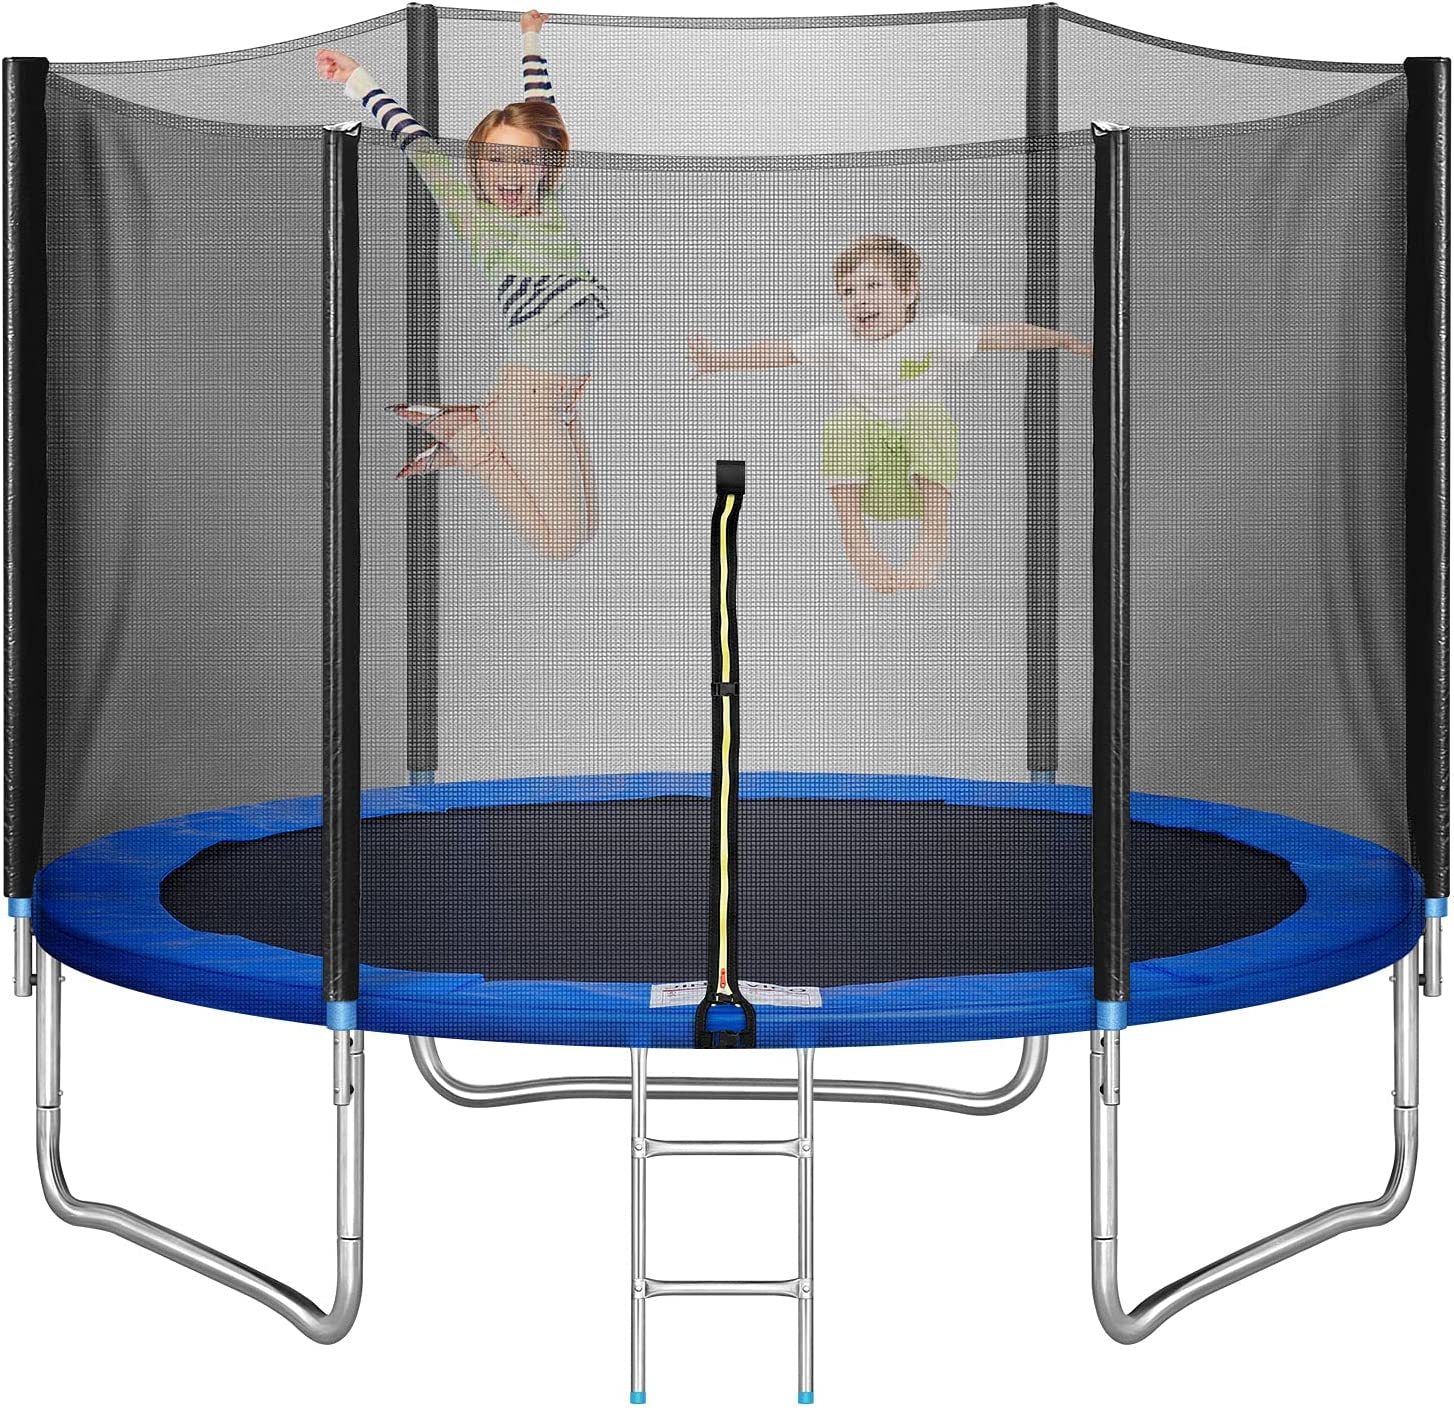 10 FT Trampoline, Recreational Trampoline with Balance Bar and S